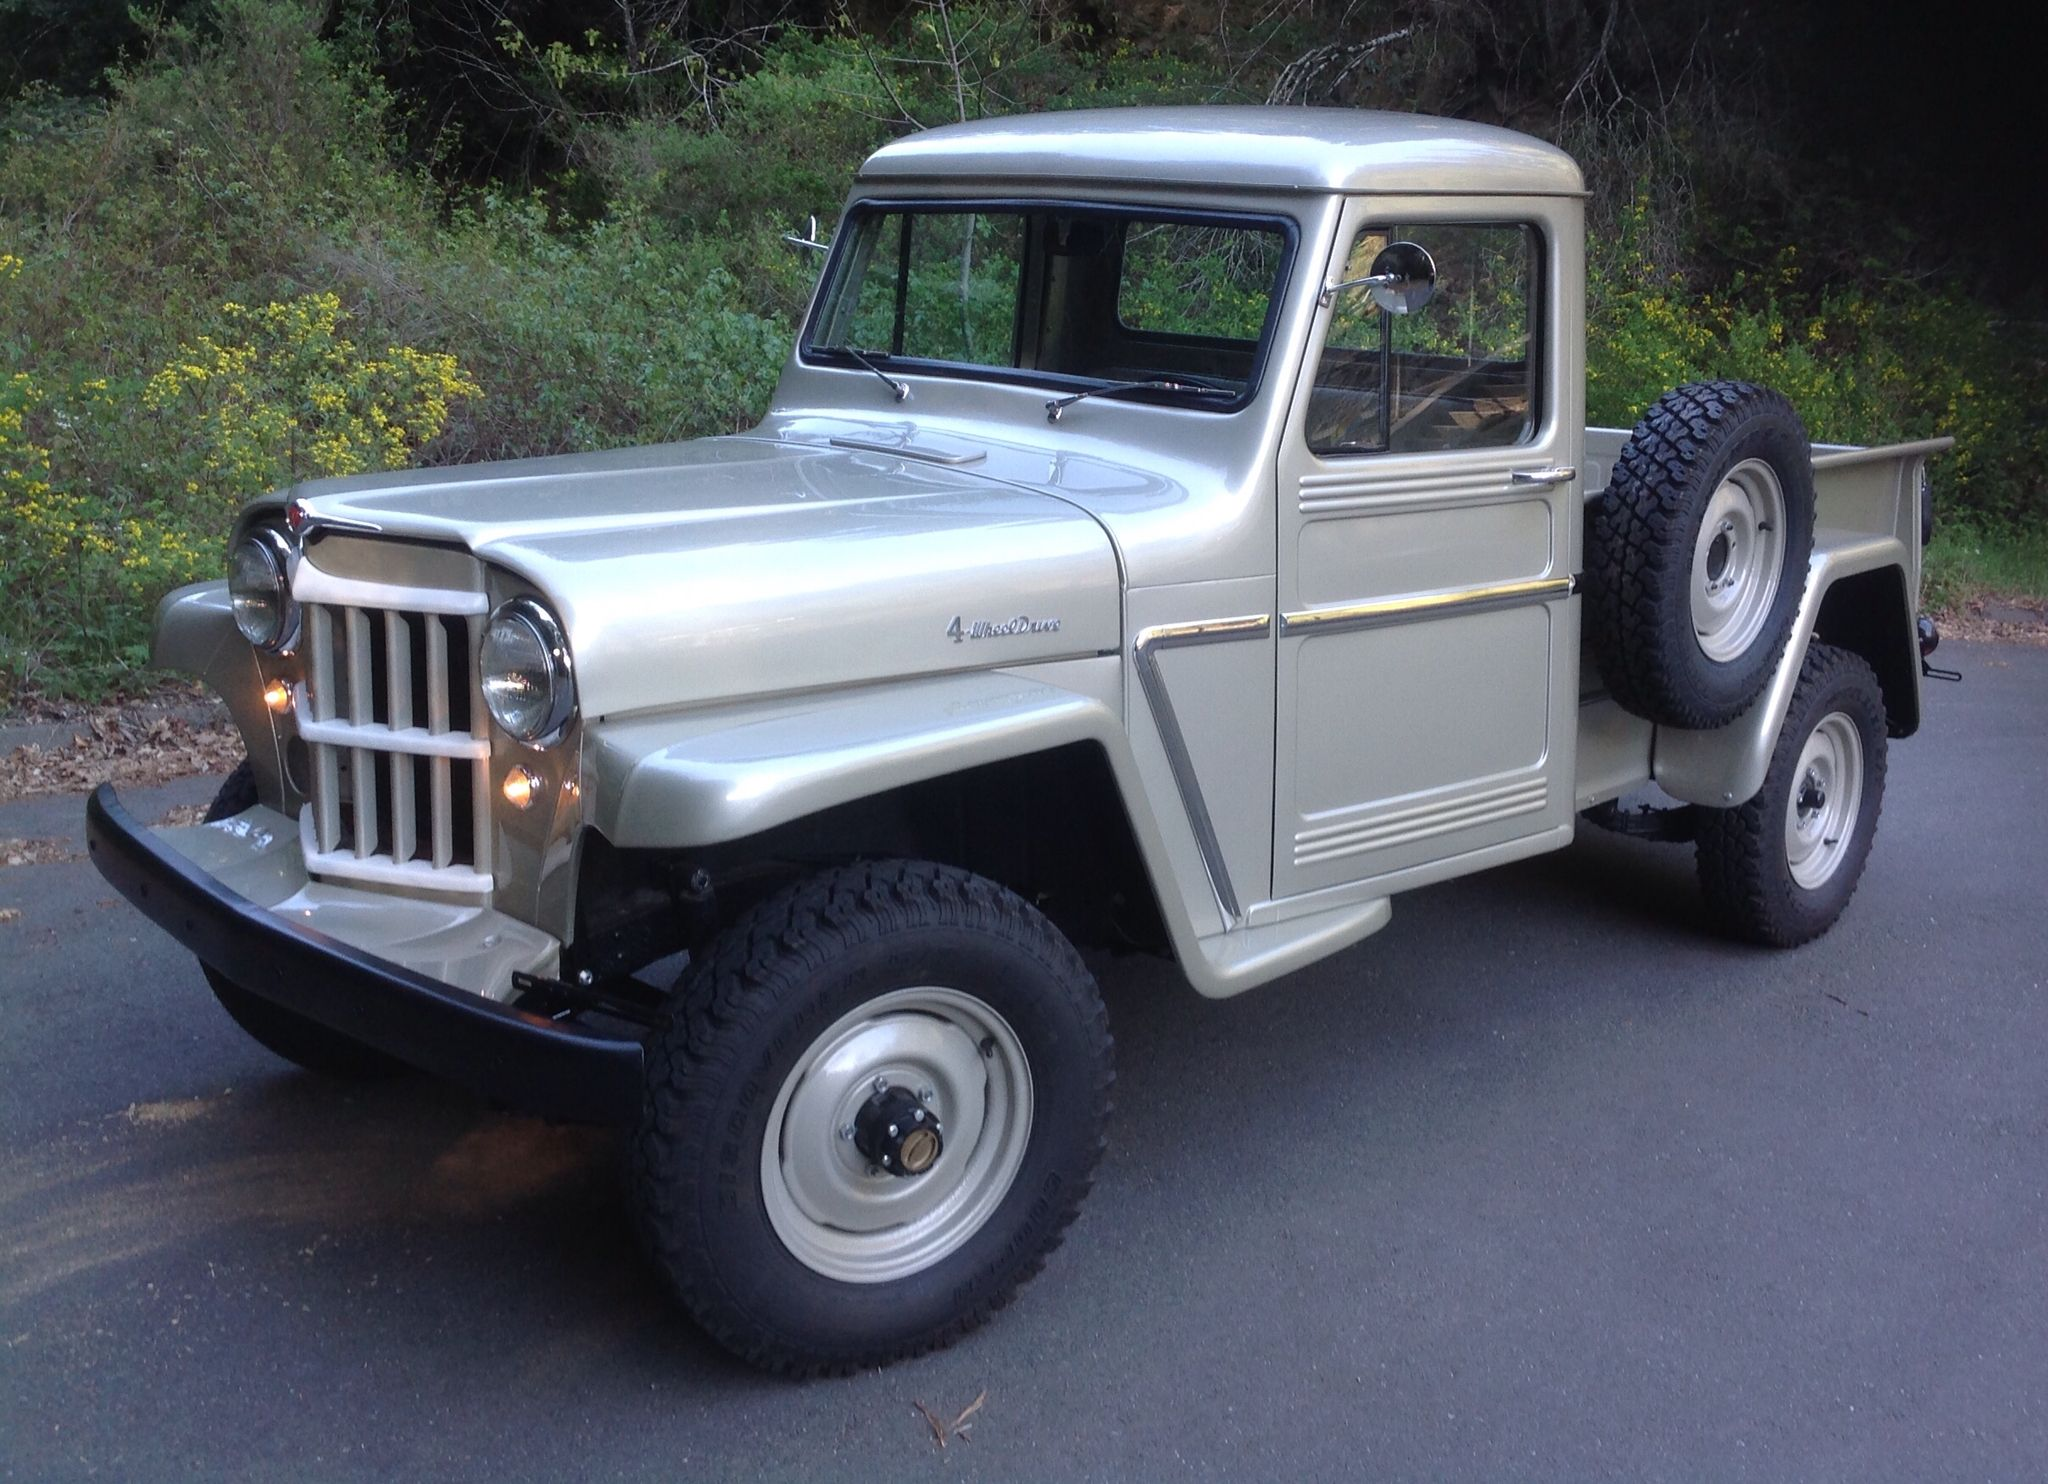 1962 Willys Truck L-6 226 Willys America Restorations   WILLYS ...